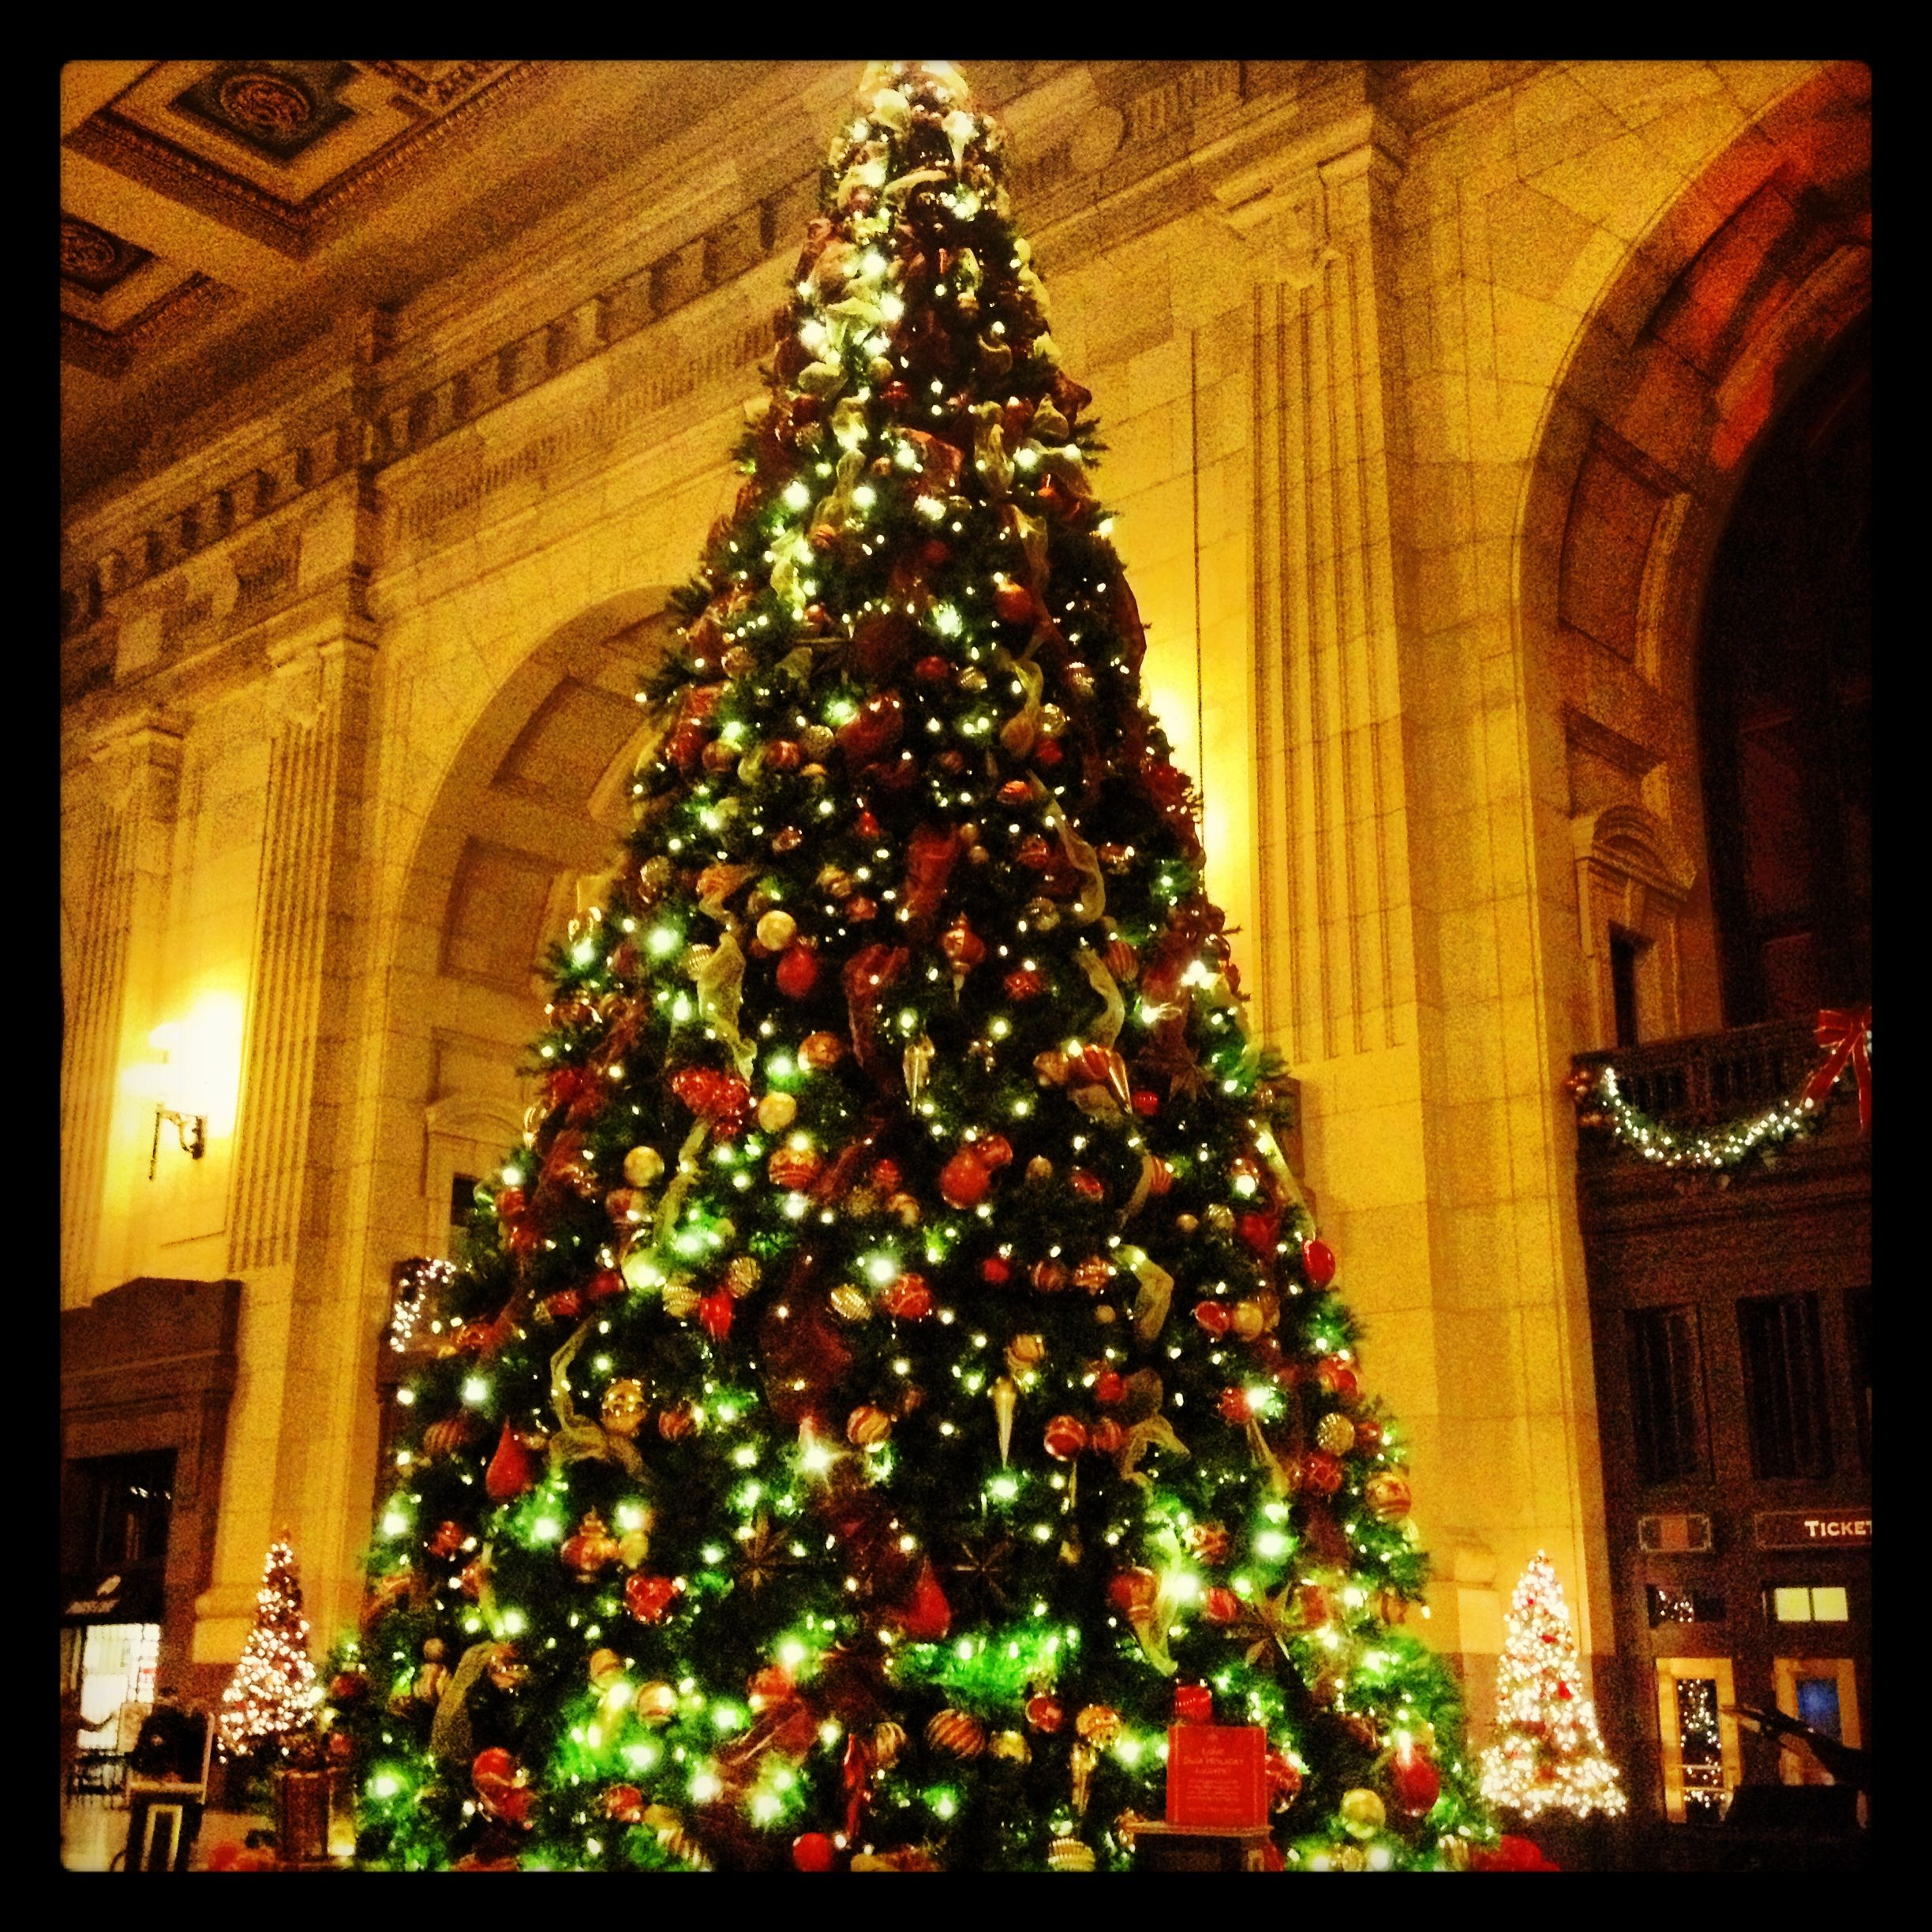 Awesome Christmas Tree At Union Station, Kansas City